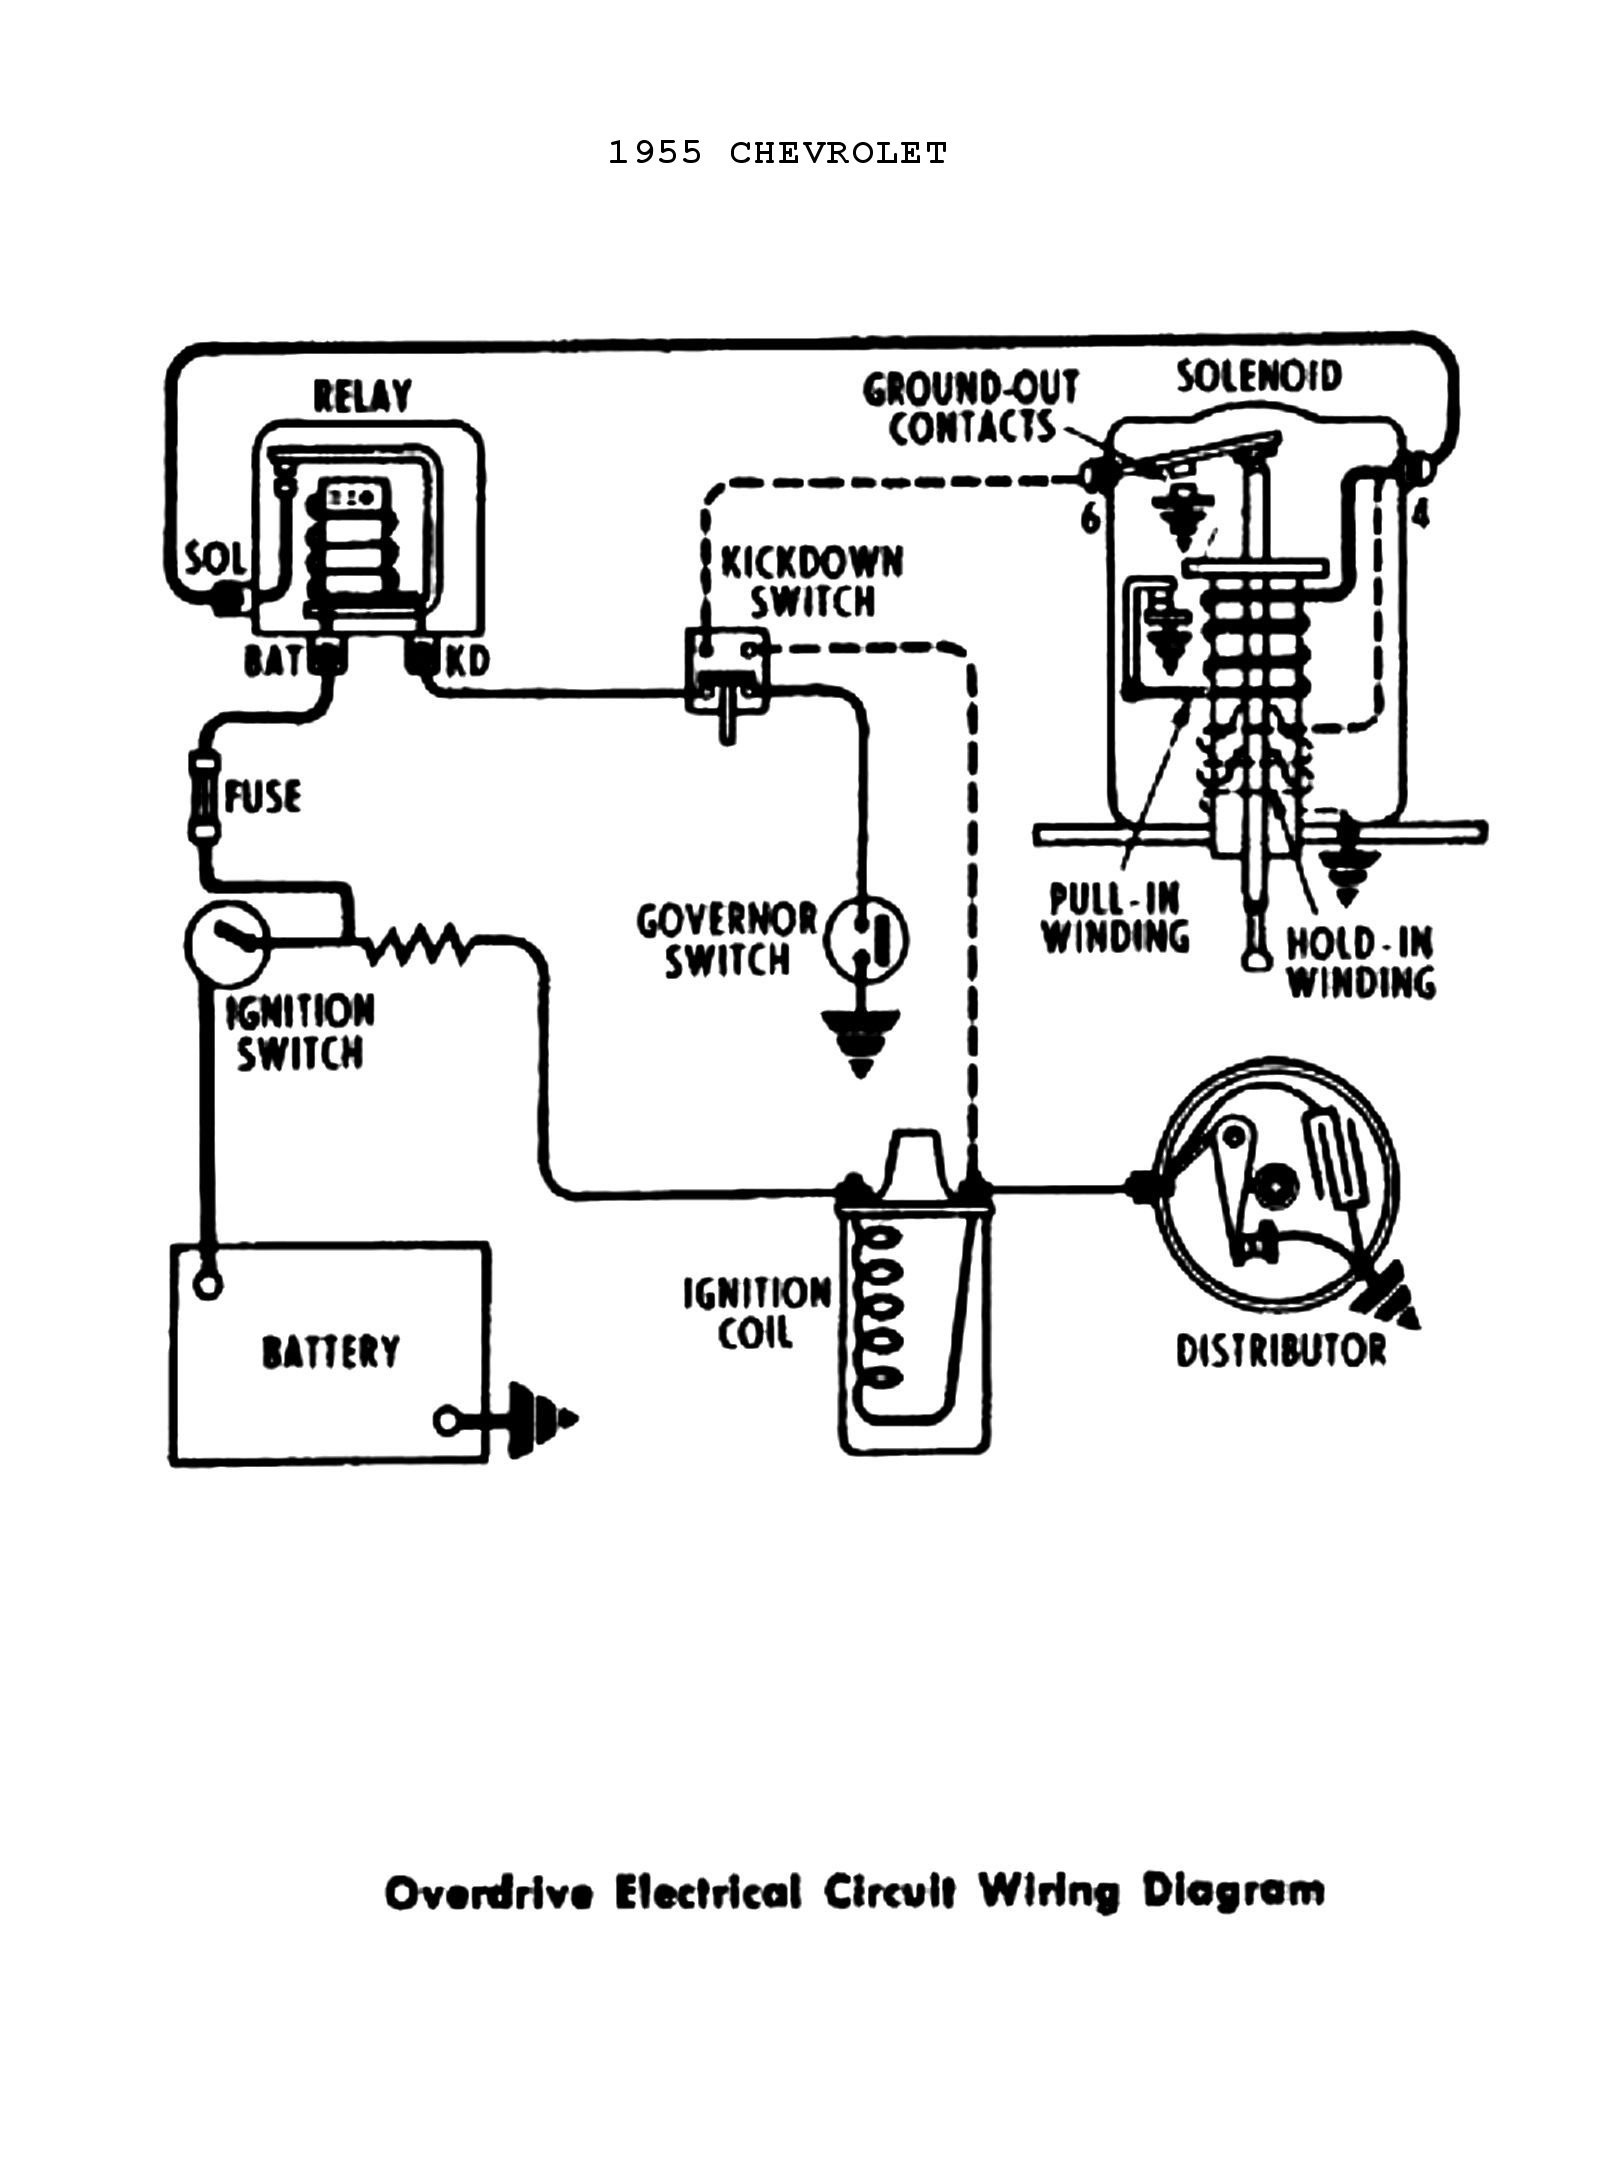 Car wiring harness diagram chevy wiring diagrams